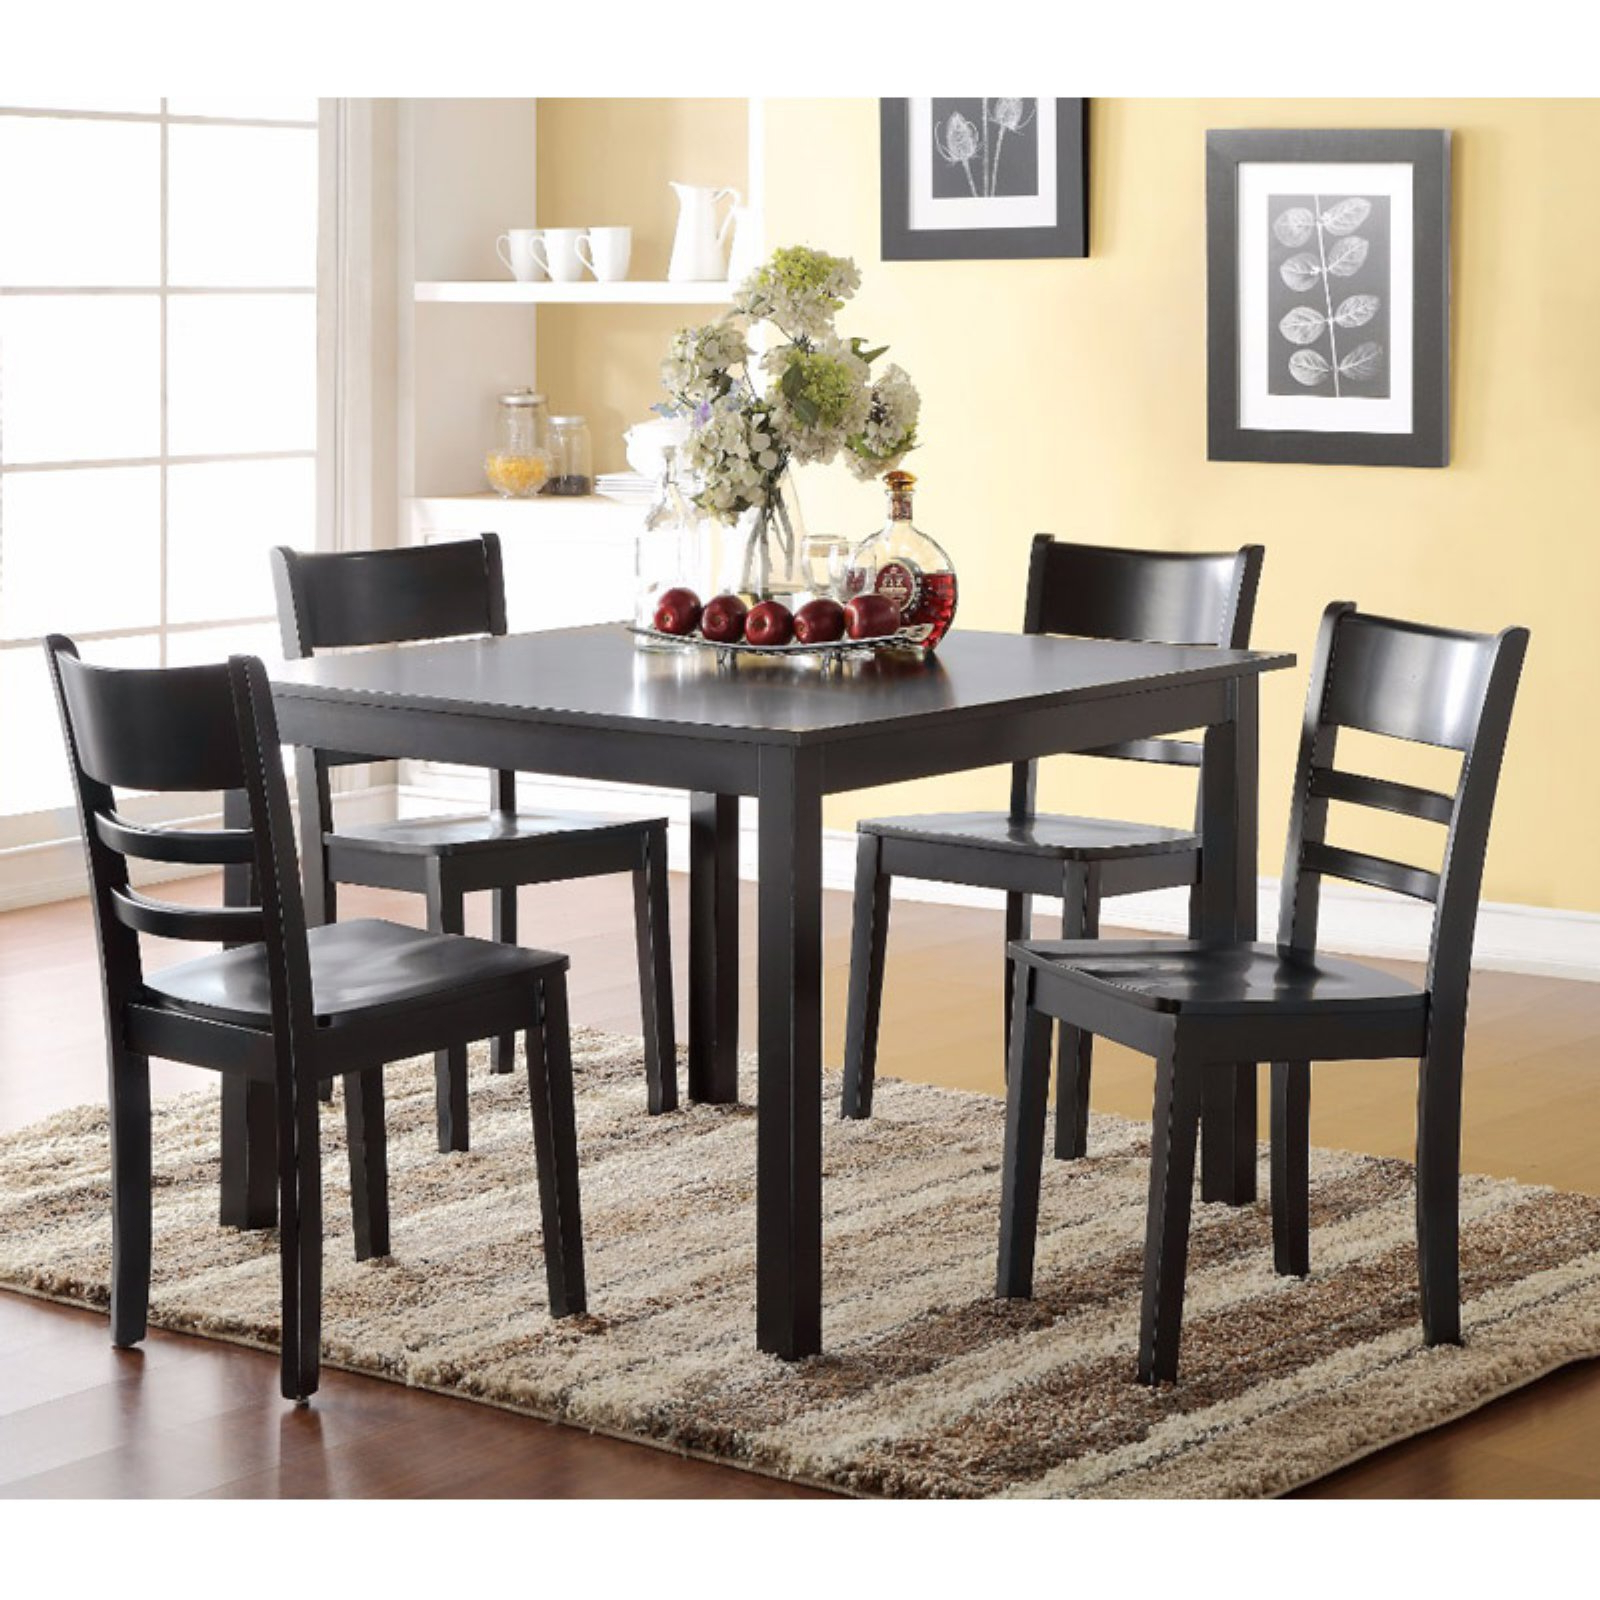 Transitional 4 Seating Double Drop Leaf Casual Dining Tables Within Well Liked Benzara Gracious 5 Piece Square Dining Table Set In  (View 9 of 25)